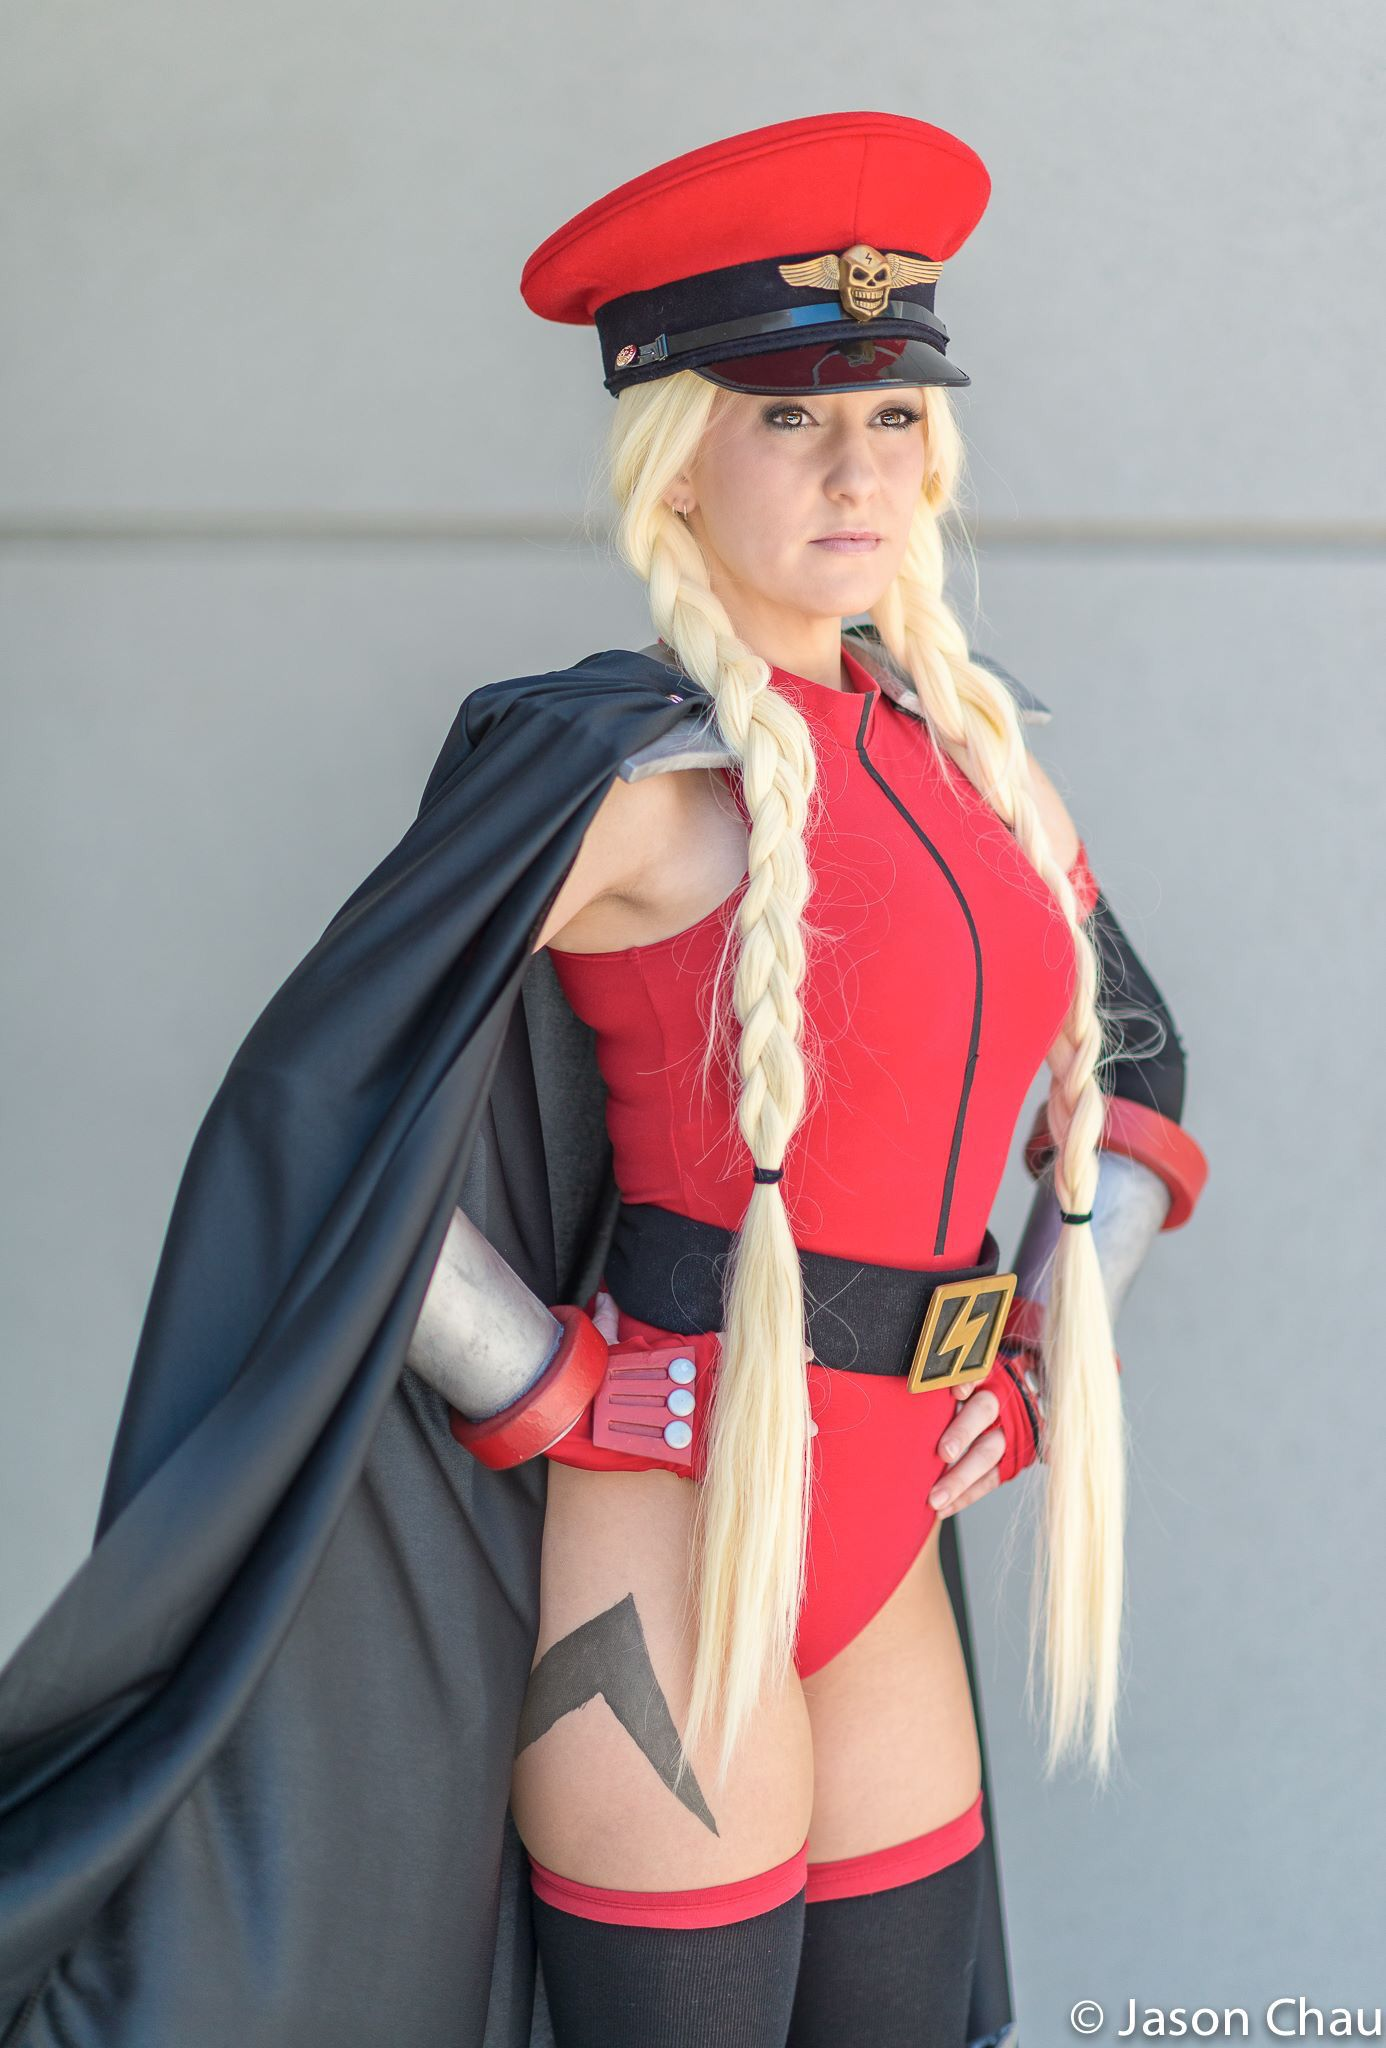 Video game characters · geek girls · anime sexy · costume makeup · raychul moore street fighter costumes cammy street fighter m bison typ 1